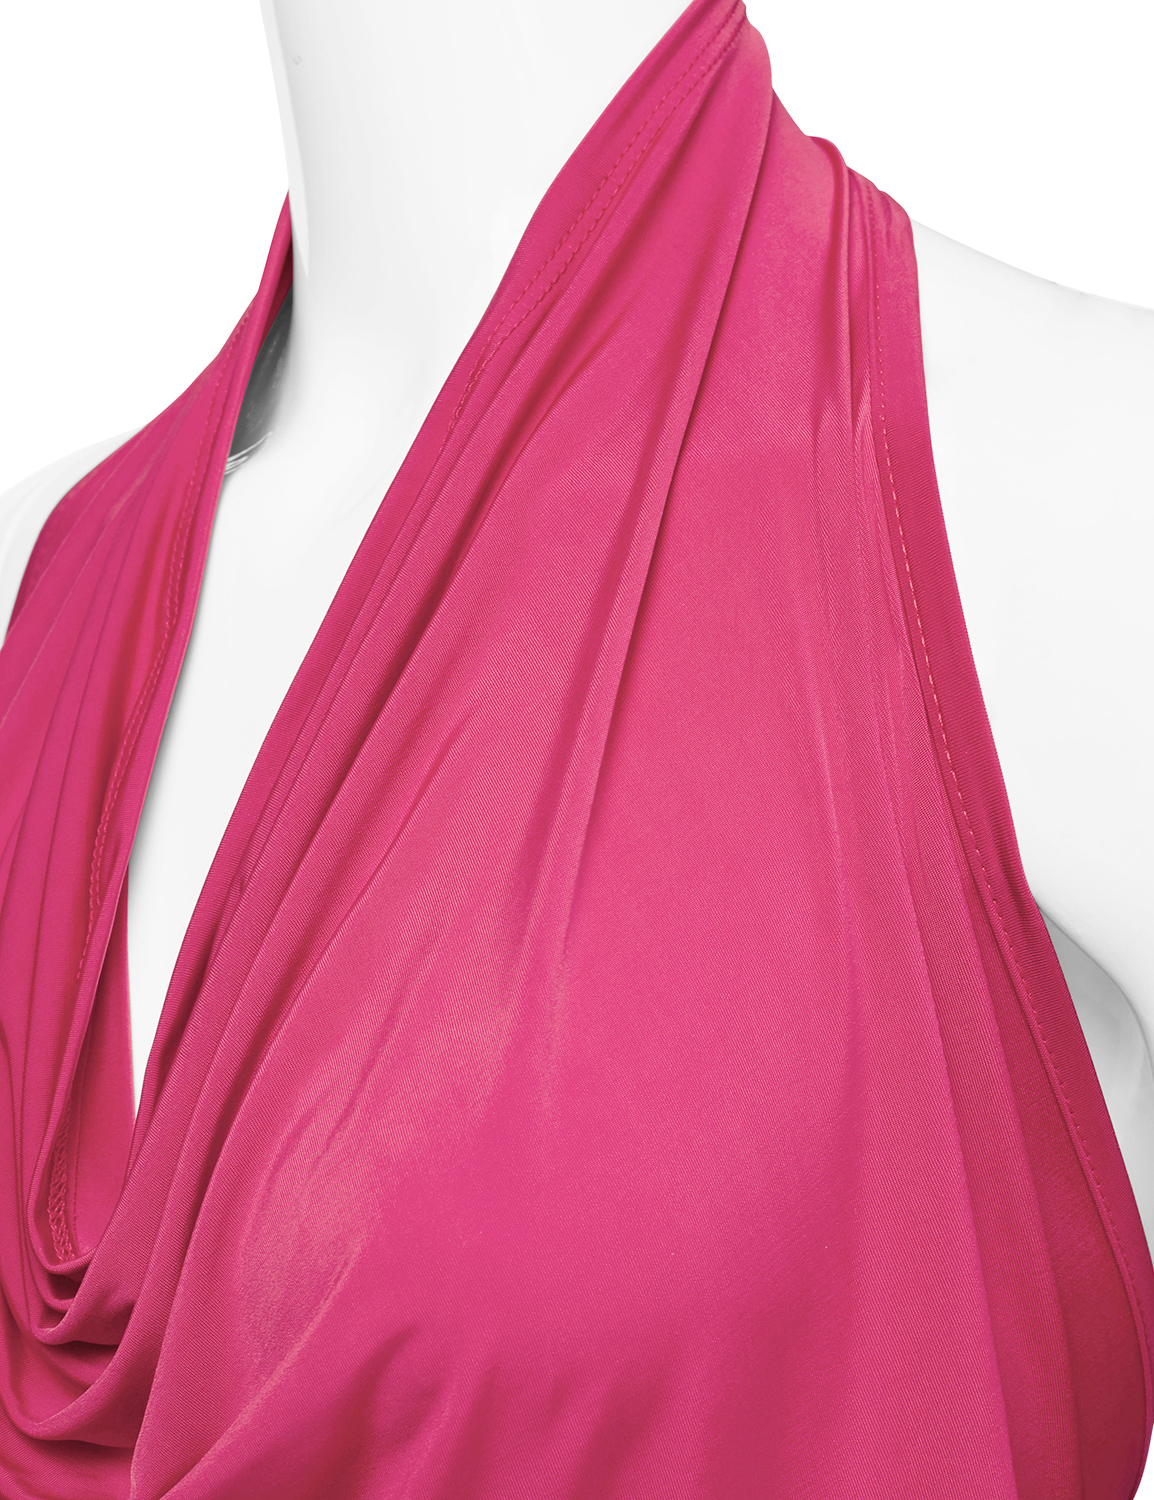 6cd8a222a568e Doublju - Doublju Women s Lightweight Casual Halter Neck Draped Backless  Top FUCHSIA M - Walmart.com